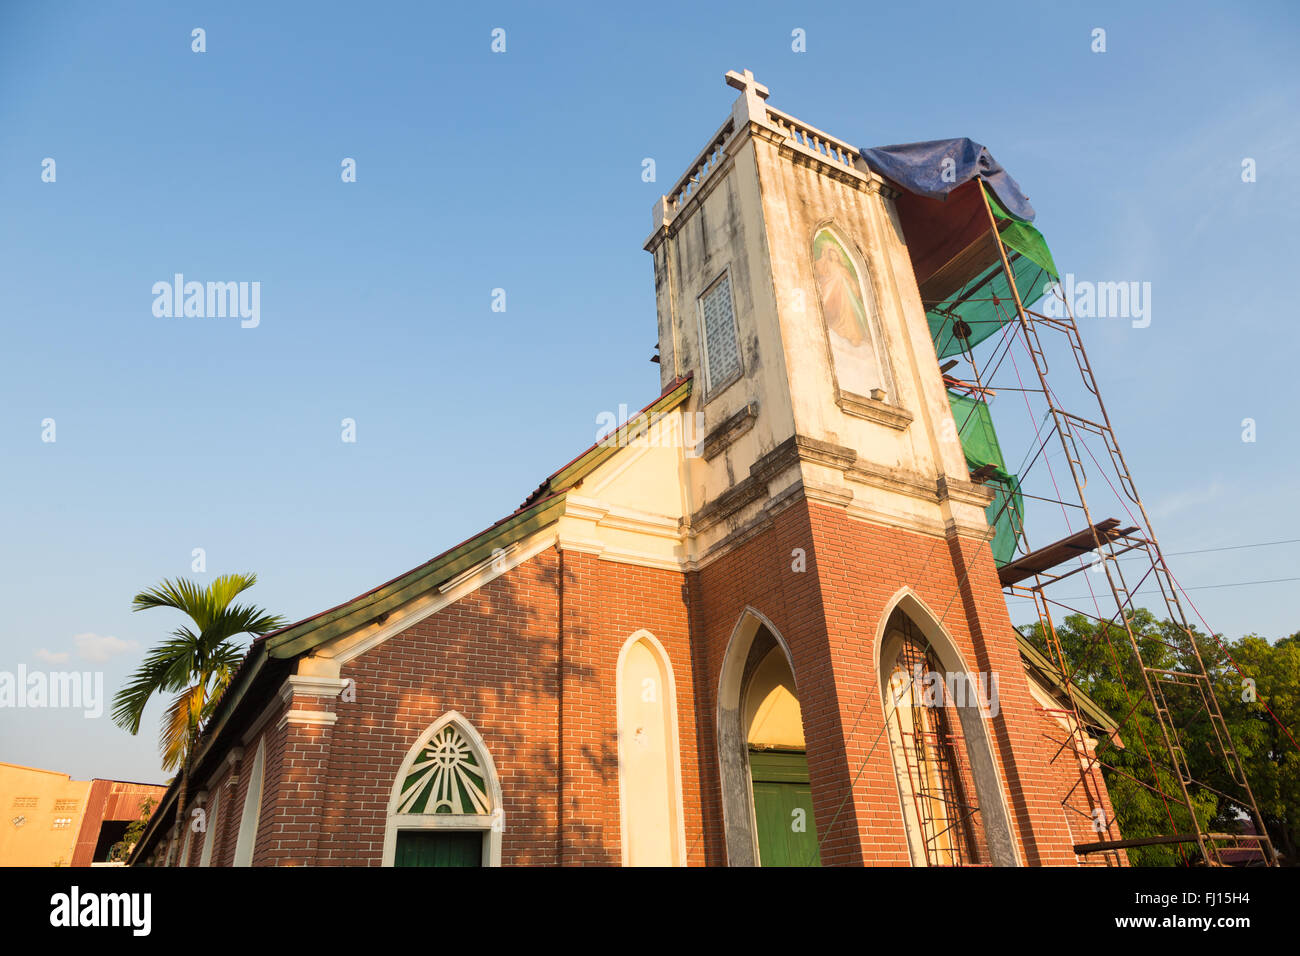 A catholic church, dating from the French colonial period, in Pakse in south Laos - Stock Image